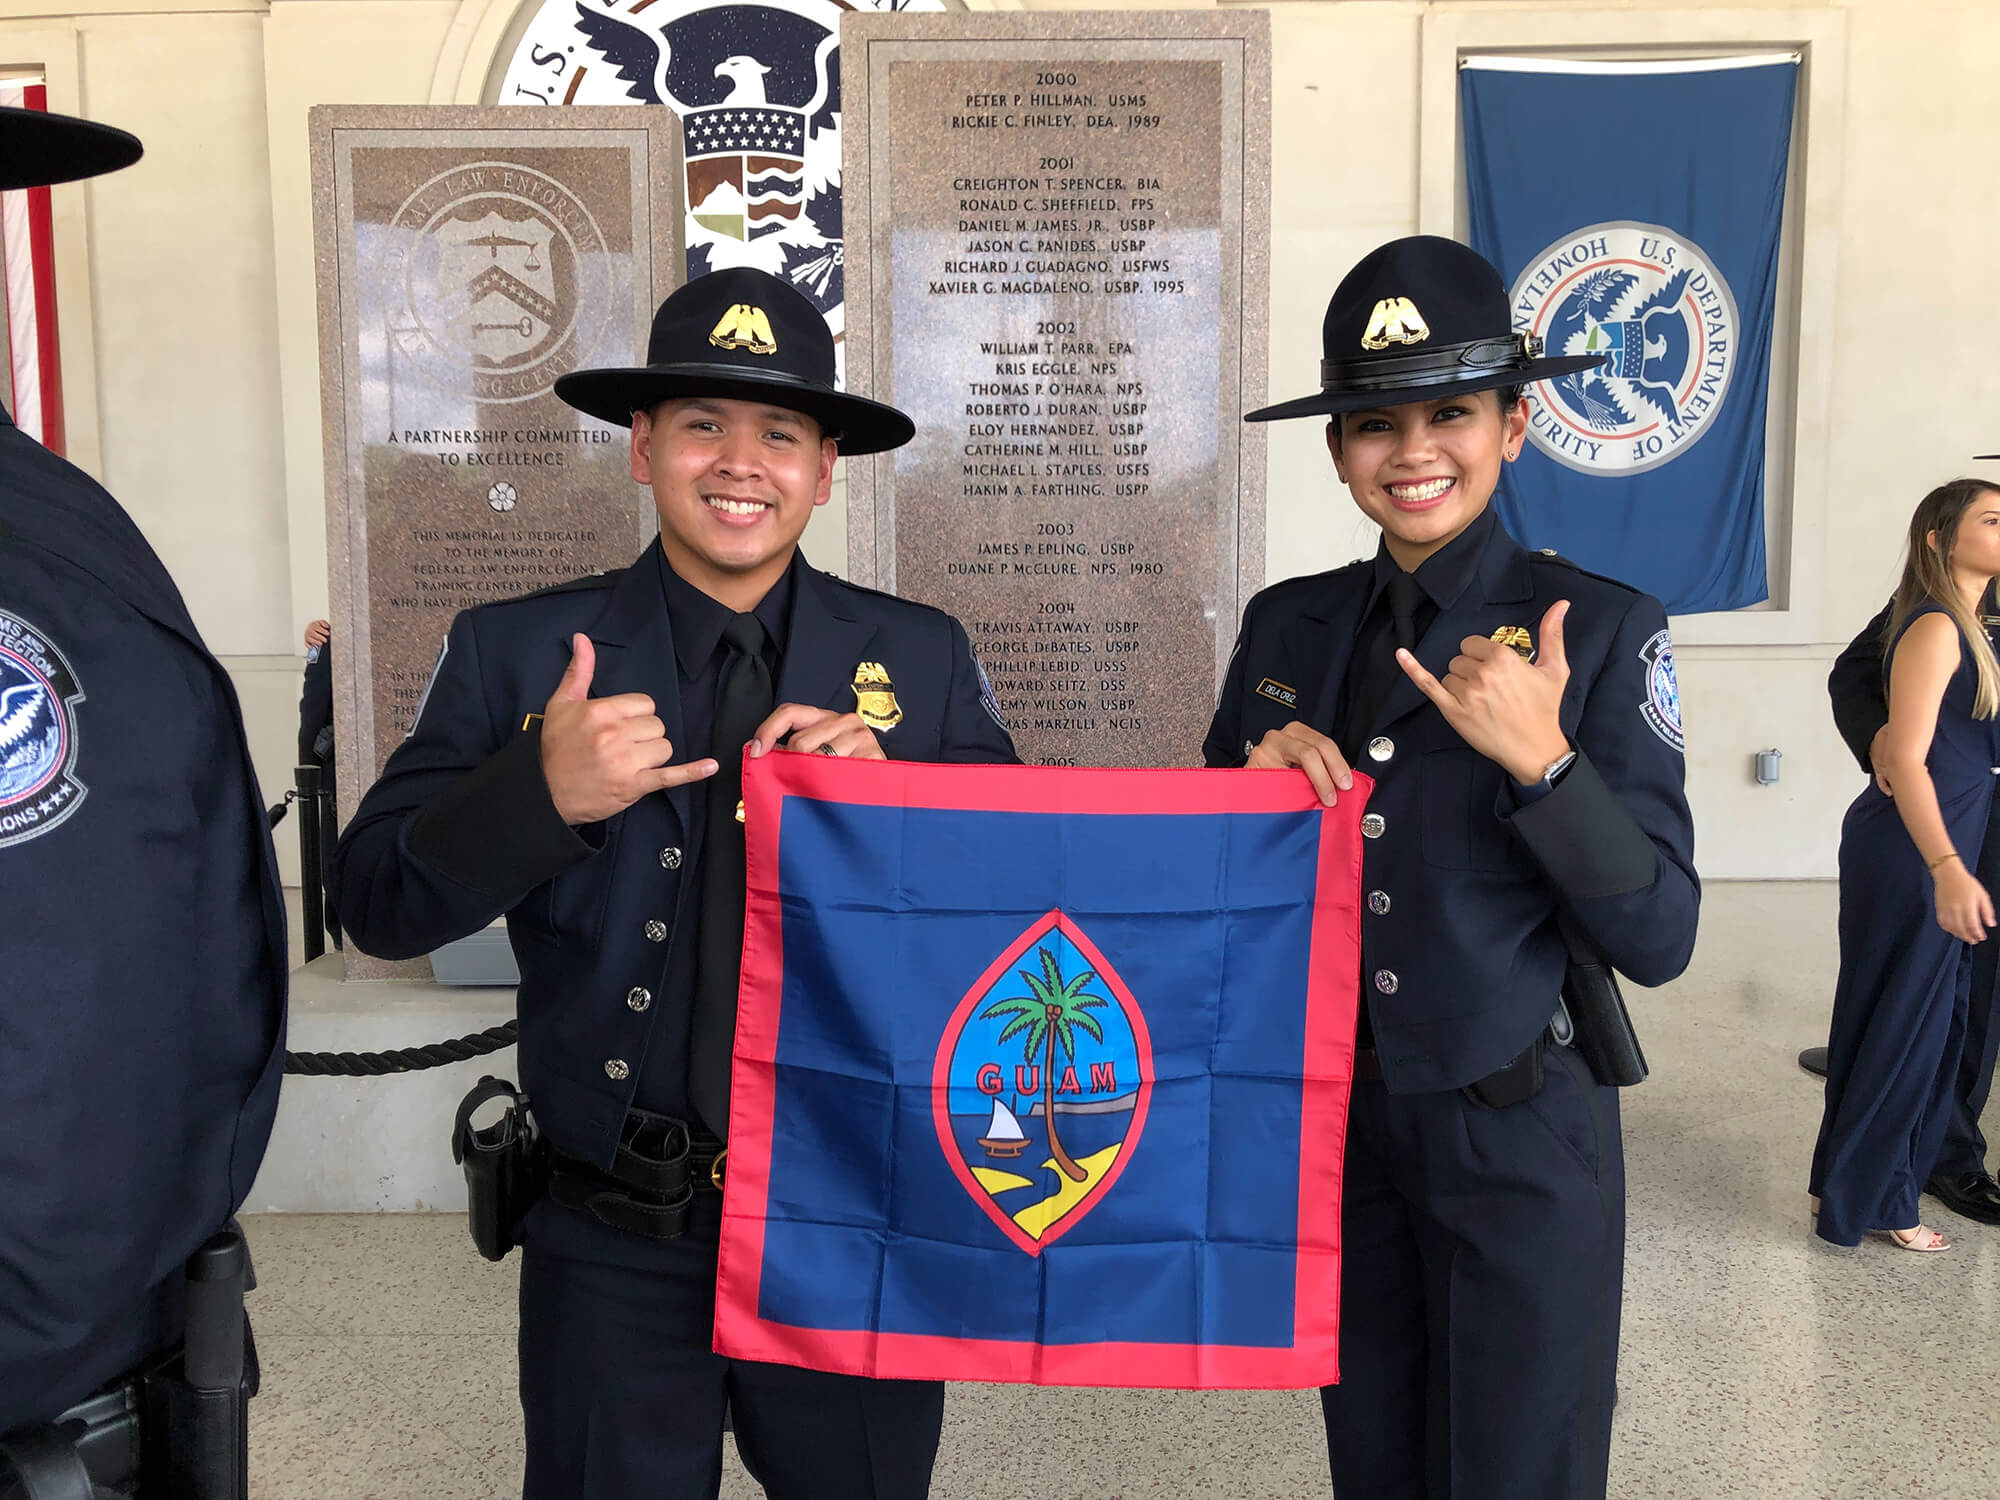 Kimberly Dela Cruz holds the Guam flag with fellow CBP graduate Roy Eay Jr. from Guam.